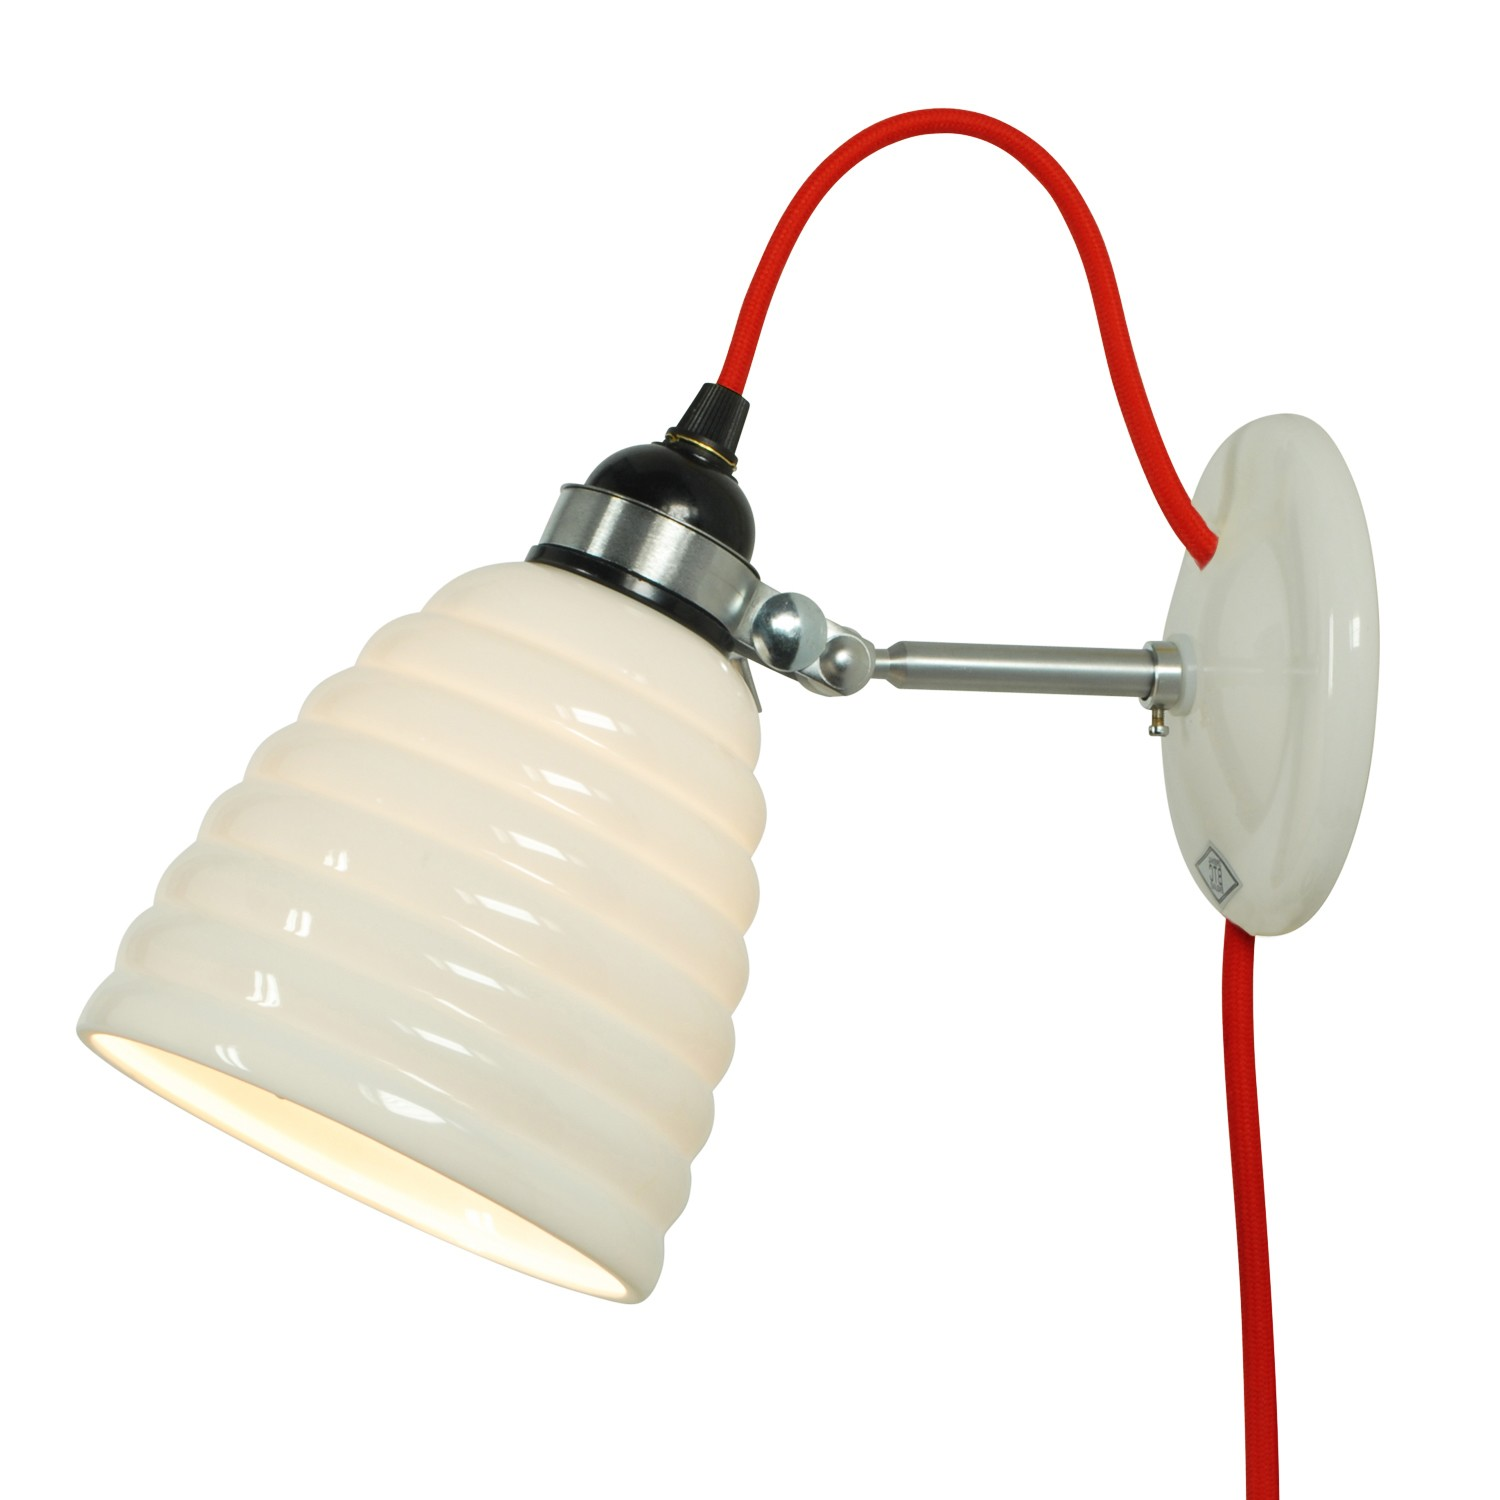 Hector Bibendum Wall Light Red Cable, Plug and Switch